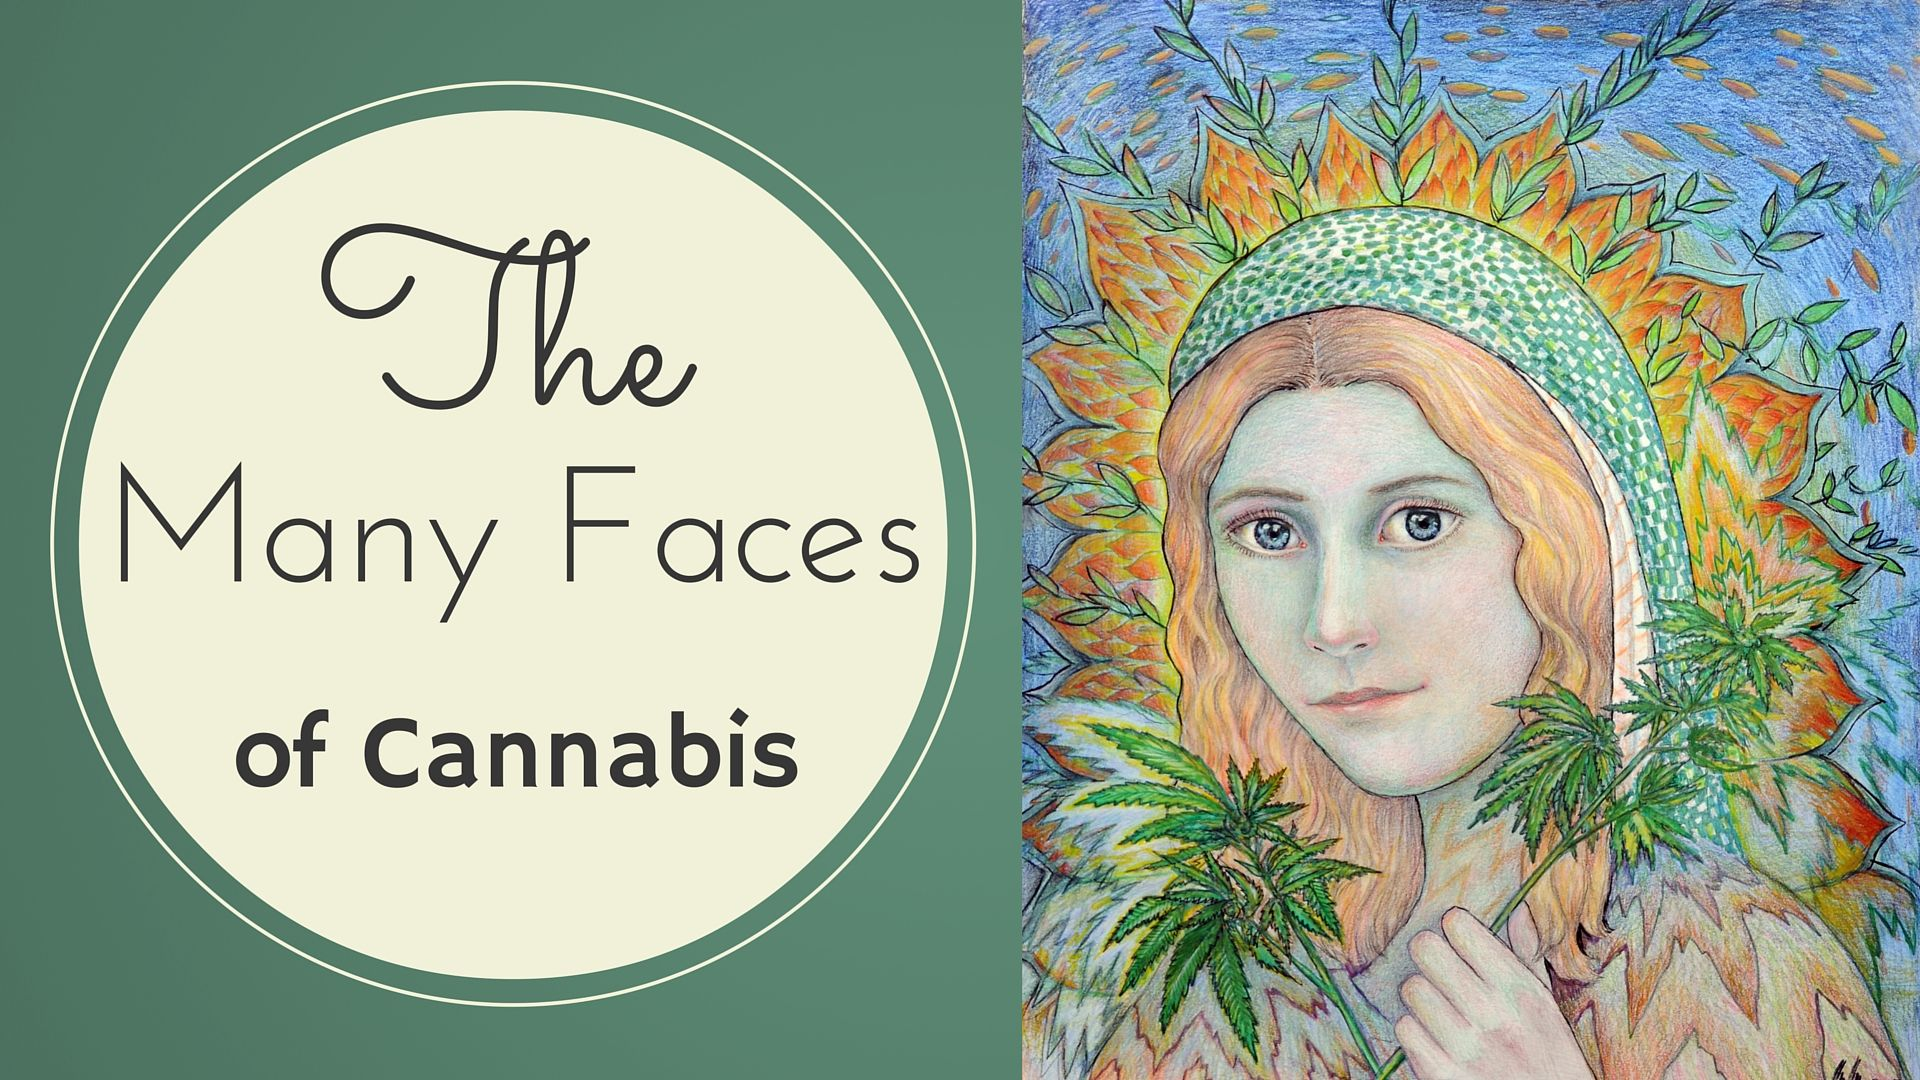 From Stoner to Stunning: Check Out These Artistic Portrayals of Cannabis